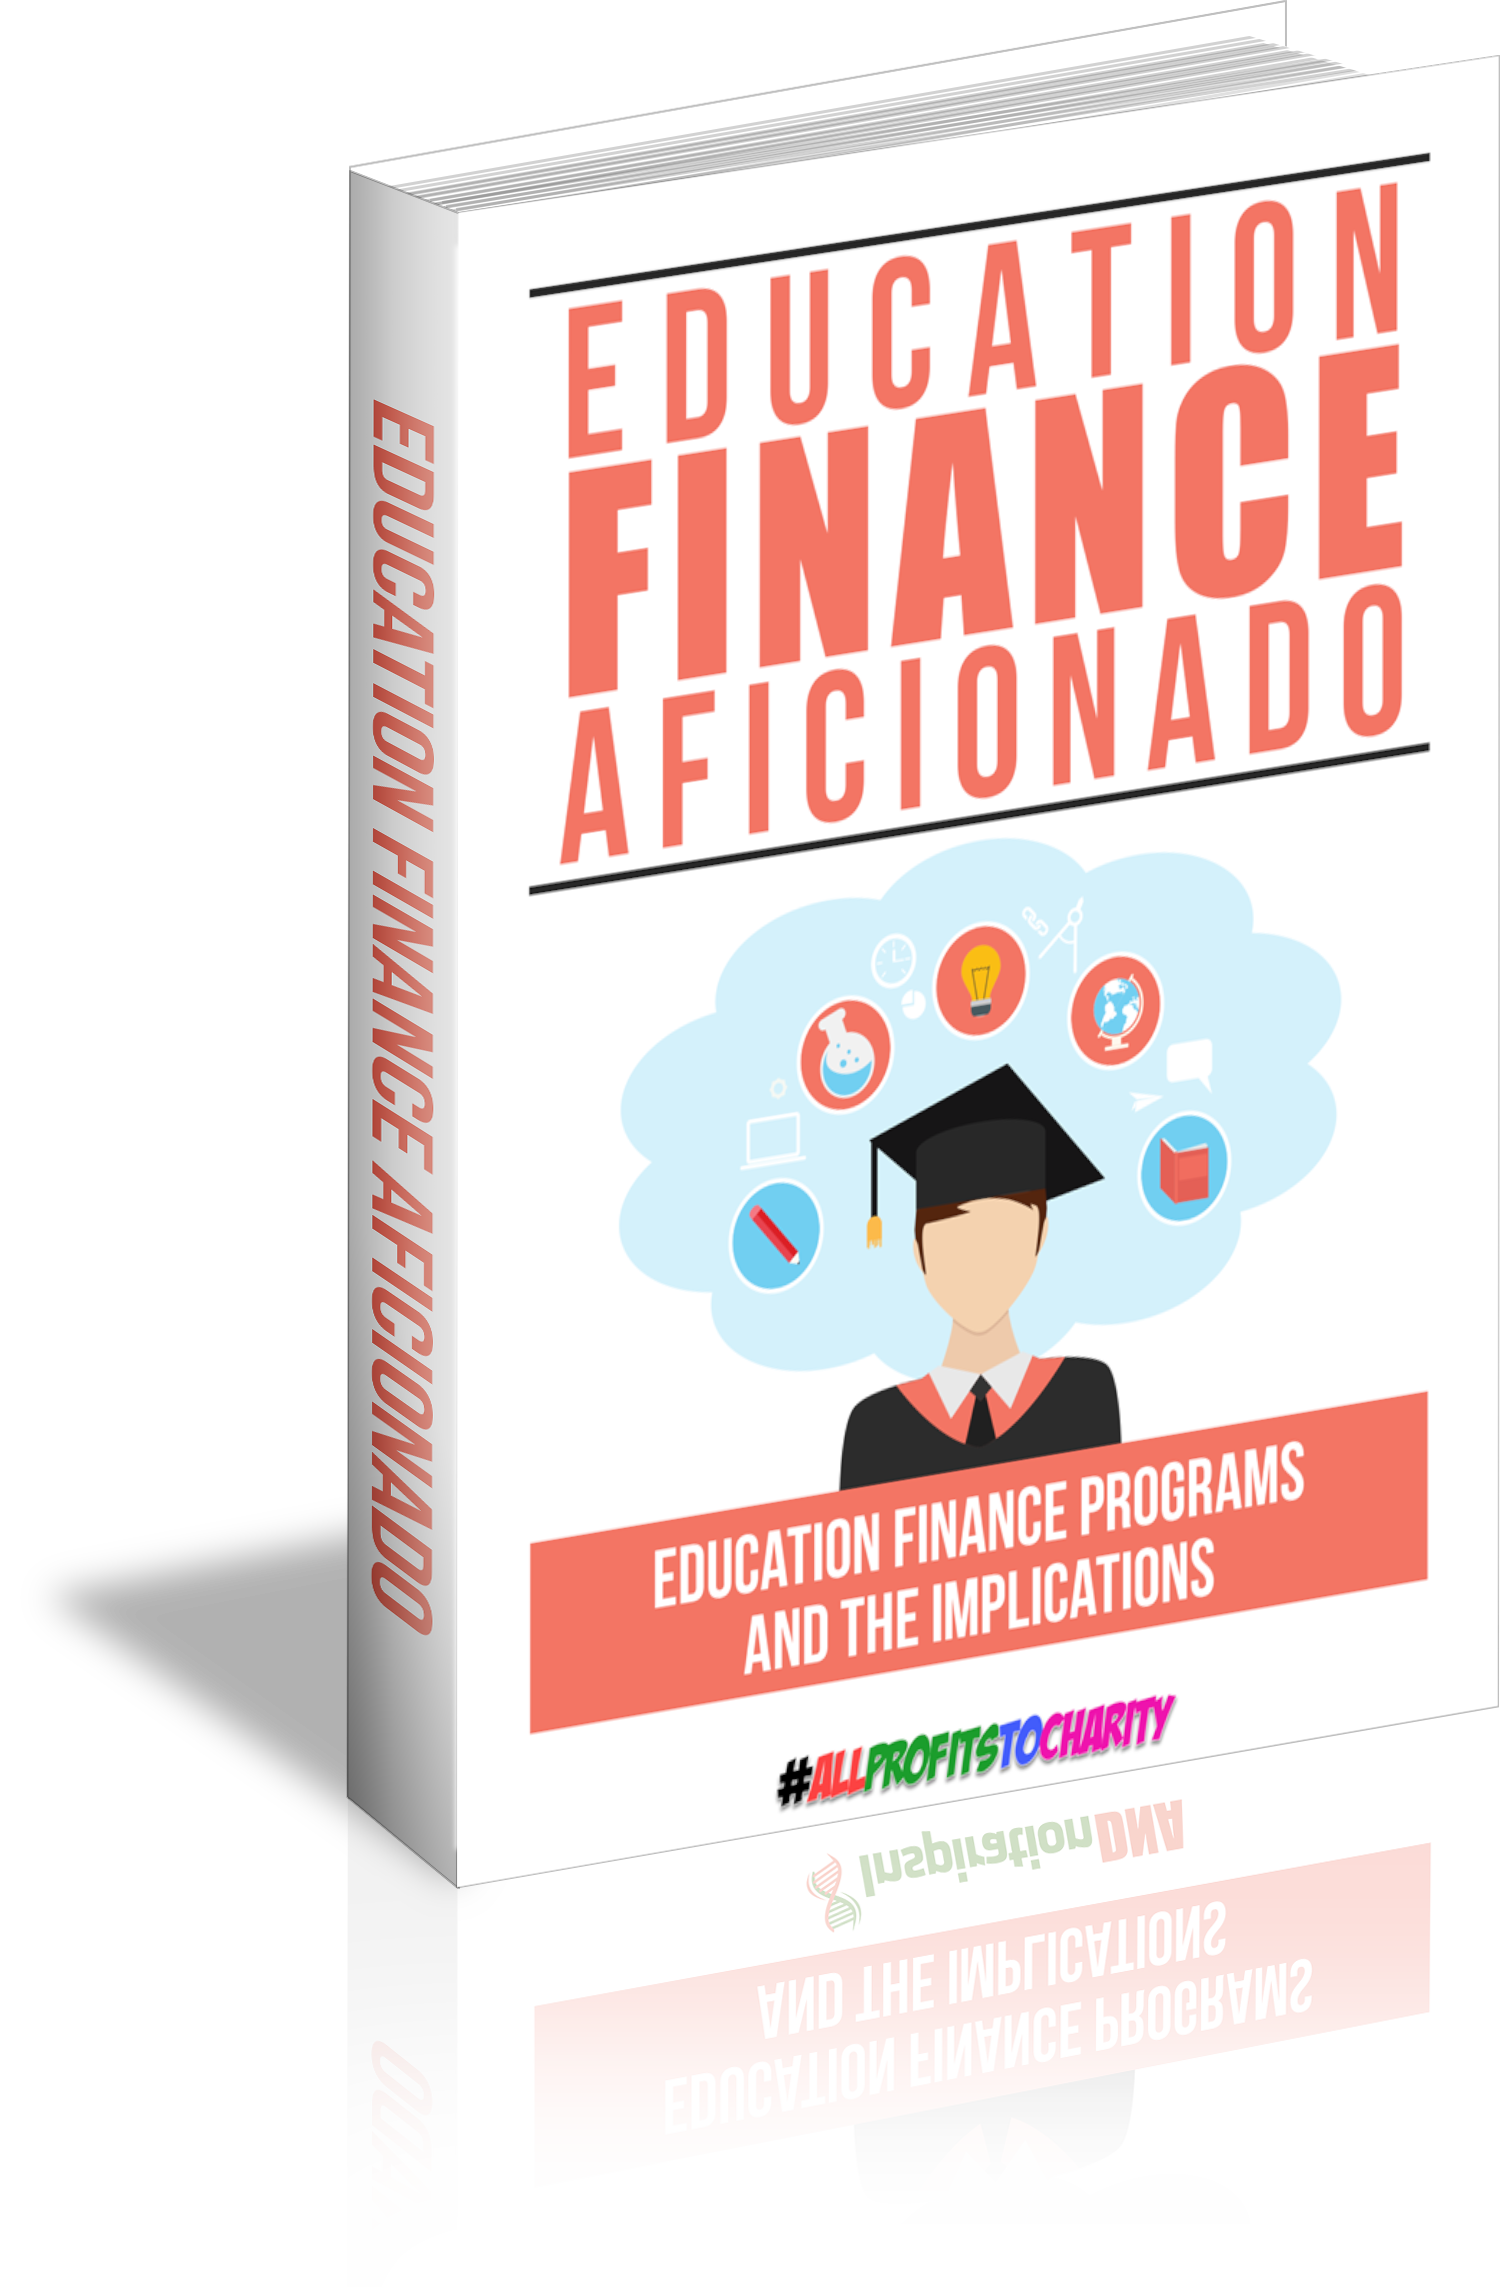 Education Finance Aficionado cover